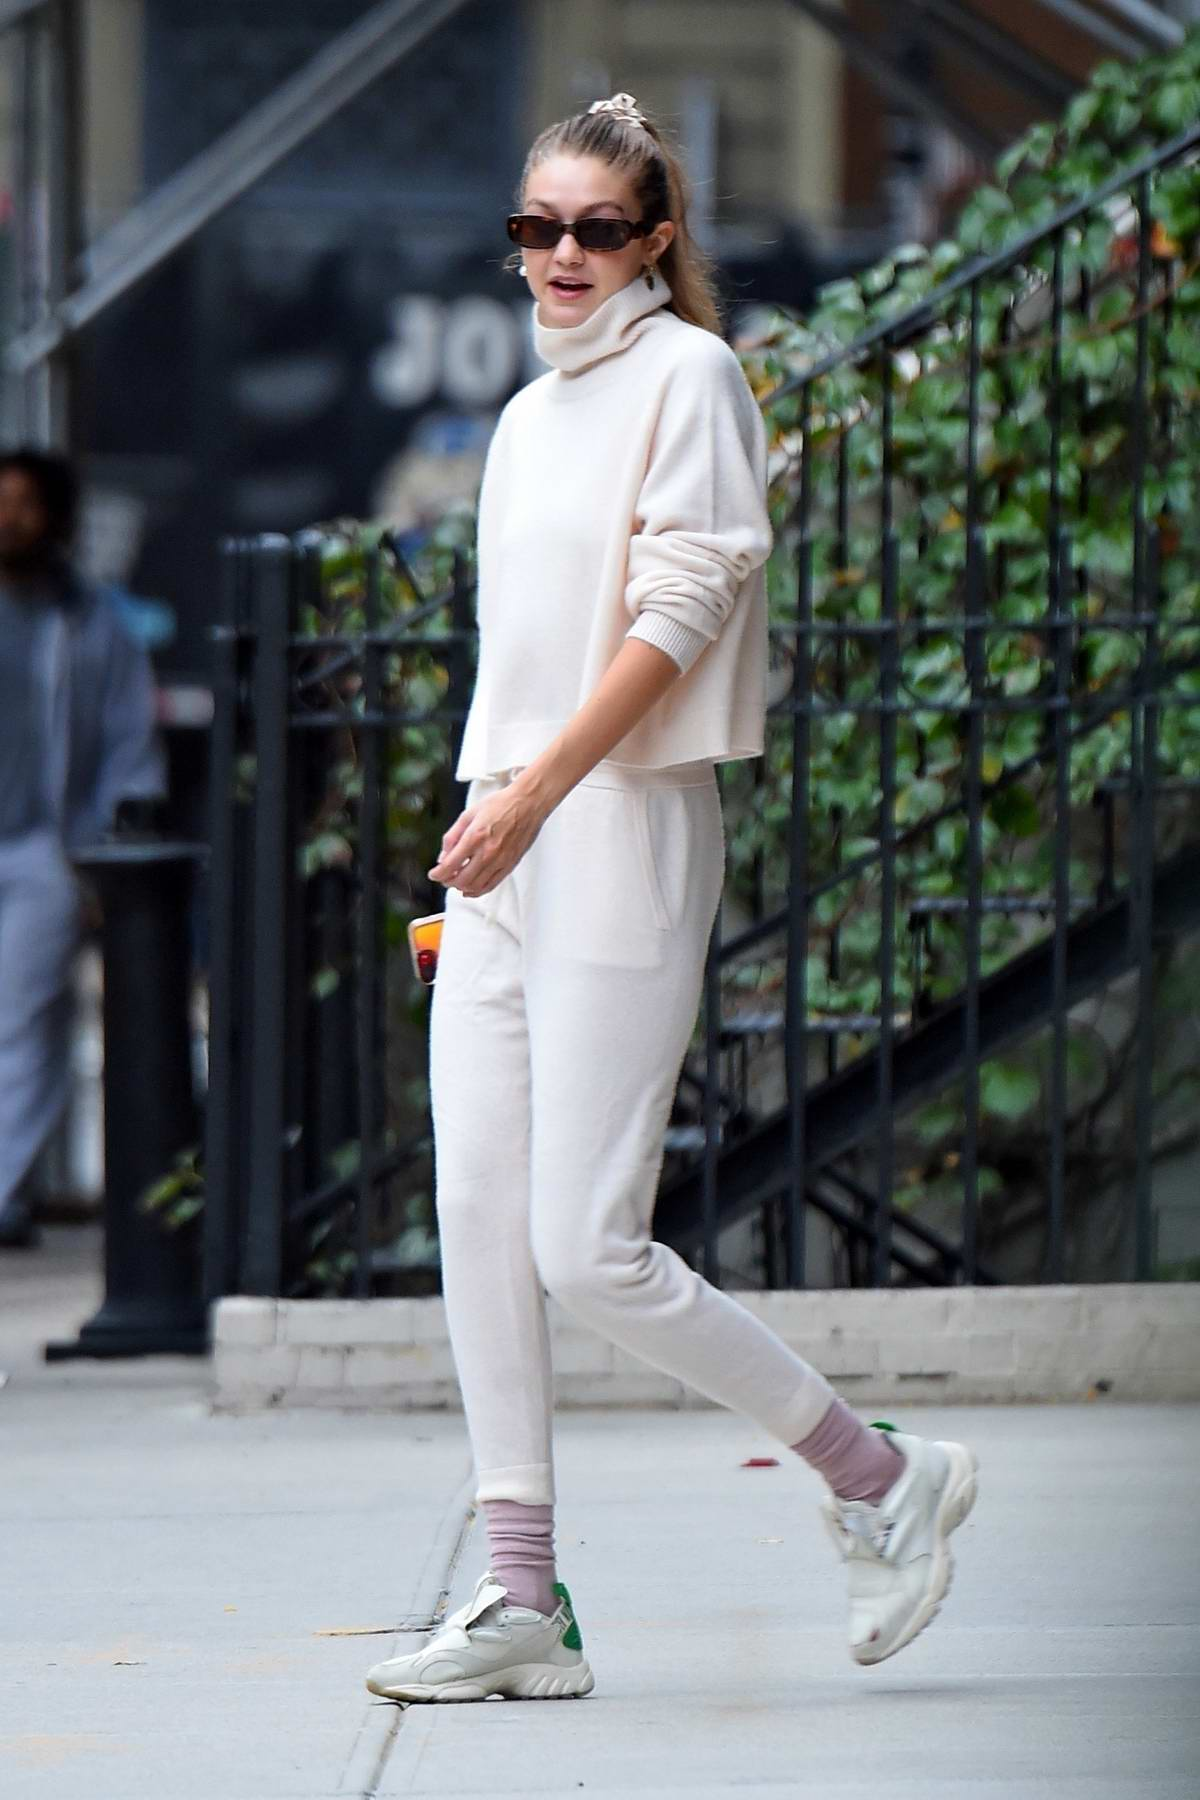 Gigi Hadid looks comfy in white casuals as she steps out with her mother in Manhattan, New York City